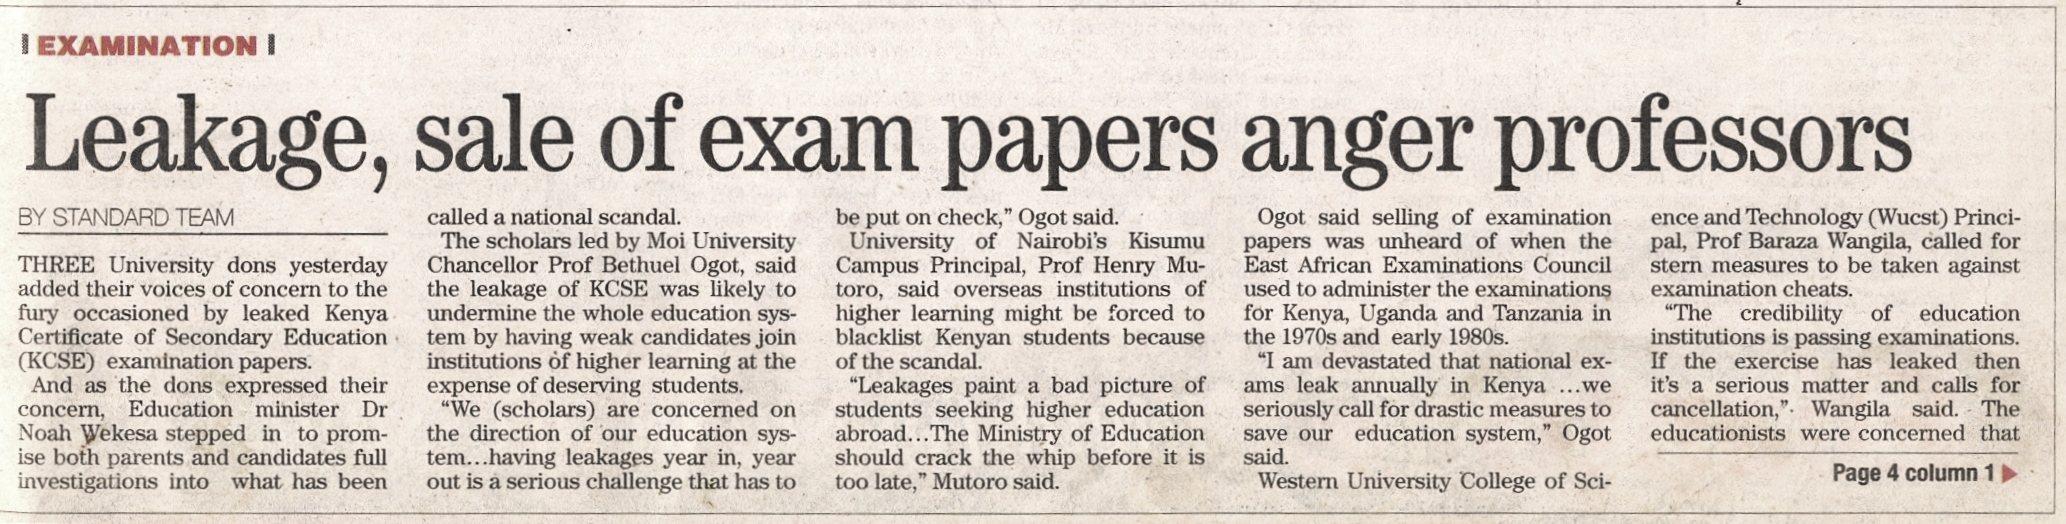 2006-Leakage, sale of exam papers anger professors